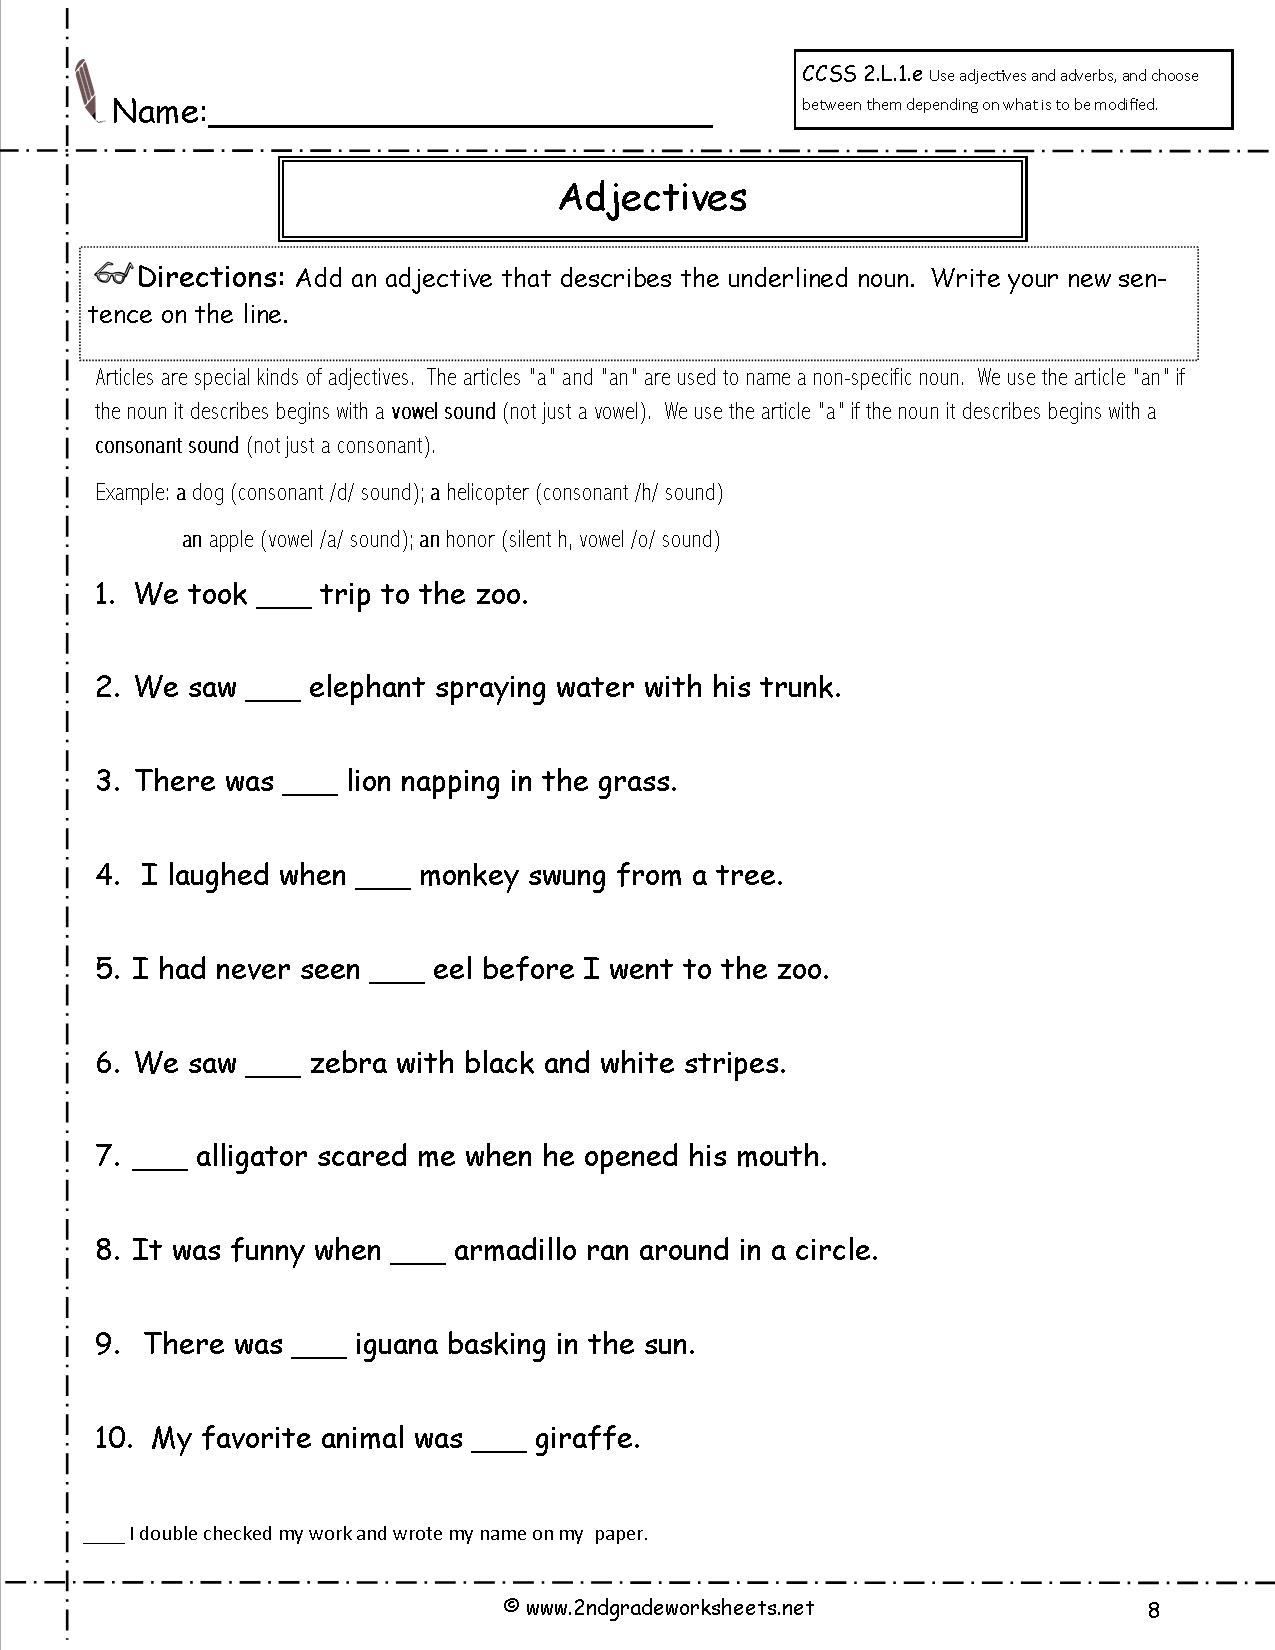 Year 10 English Worksheets Printable